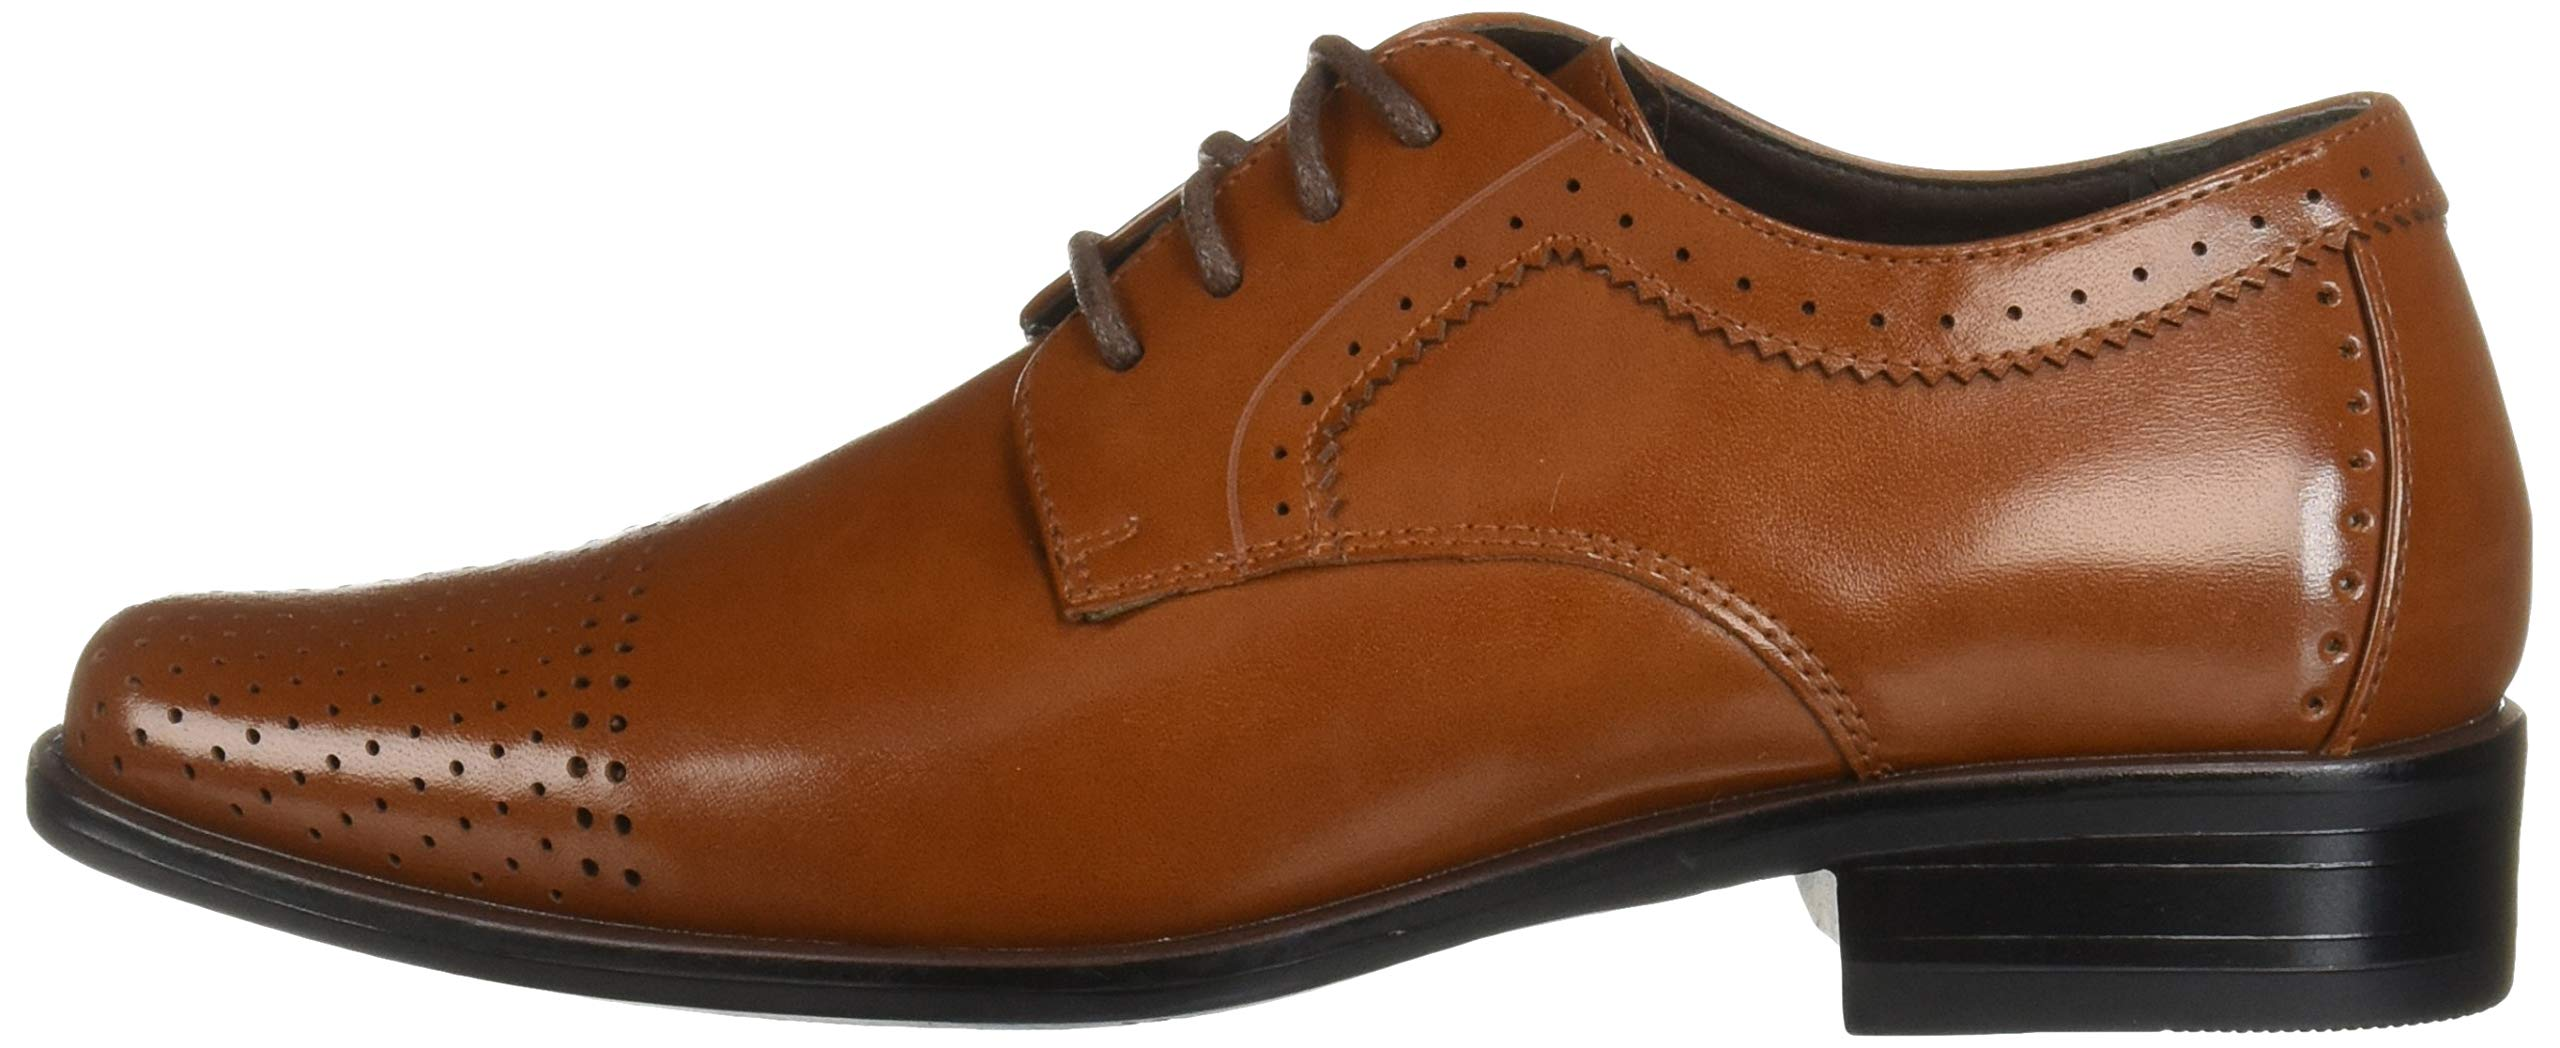 STACY ADAMS Unisex Sanborn Perfed Cap Toe Lace-Up Oxford, Cognac 5 M US Big Kid by STACY ADAMS (Image #5)